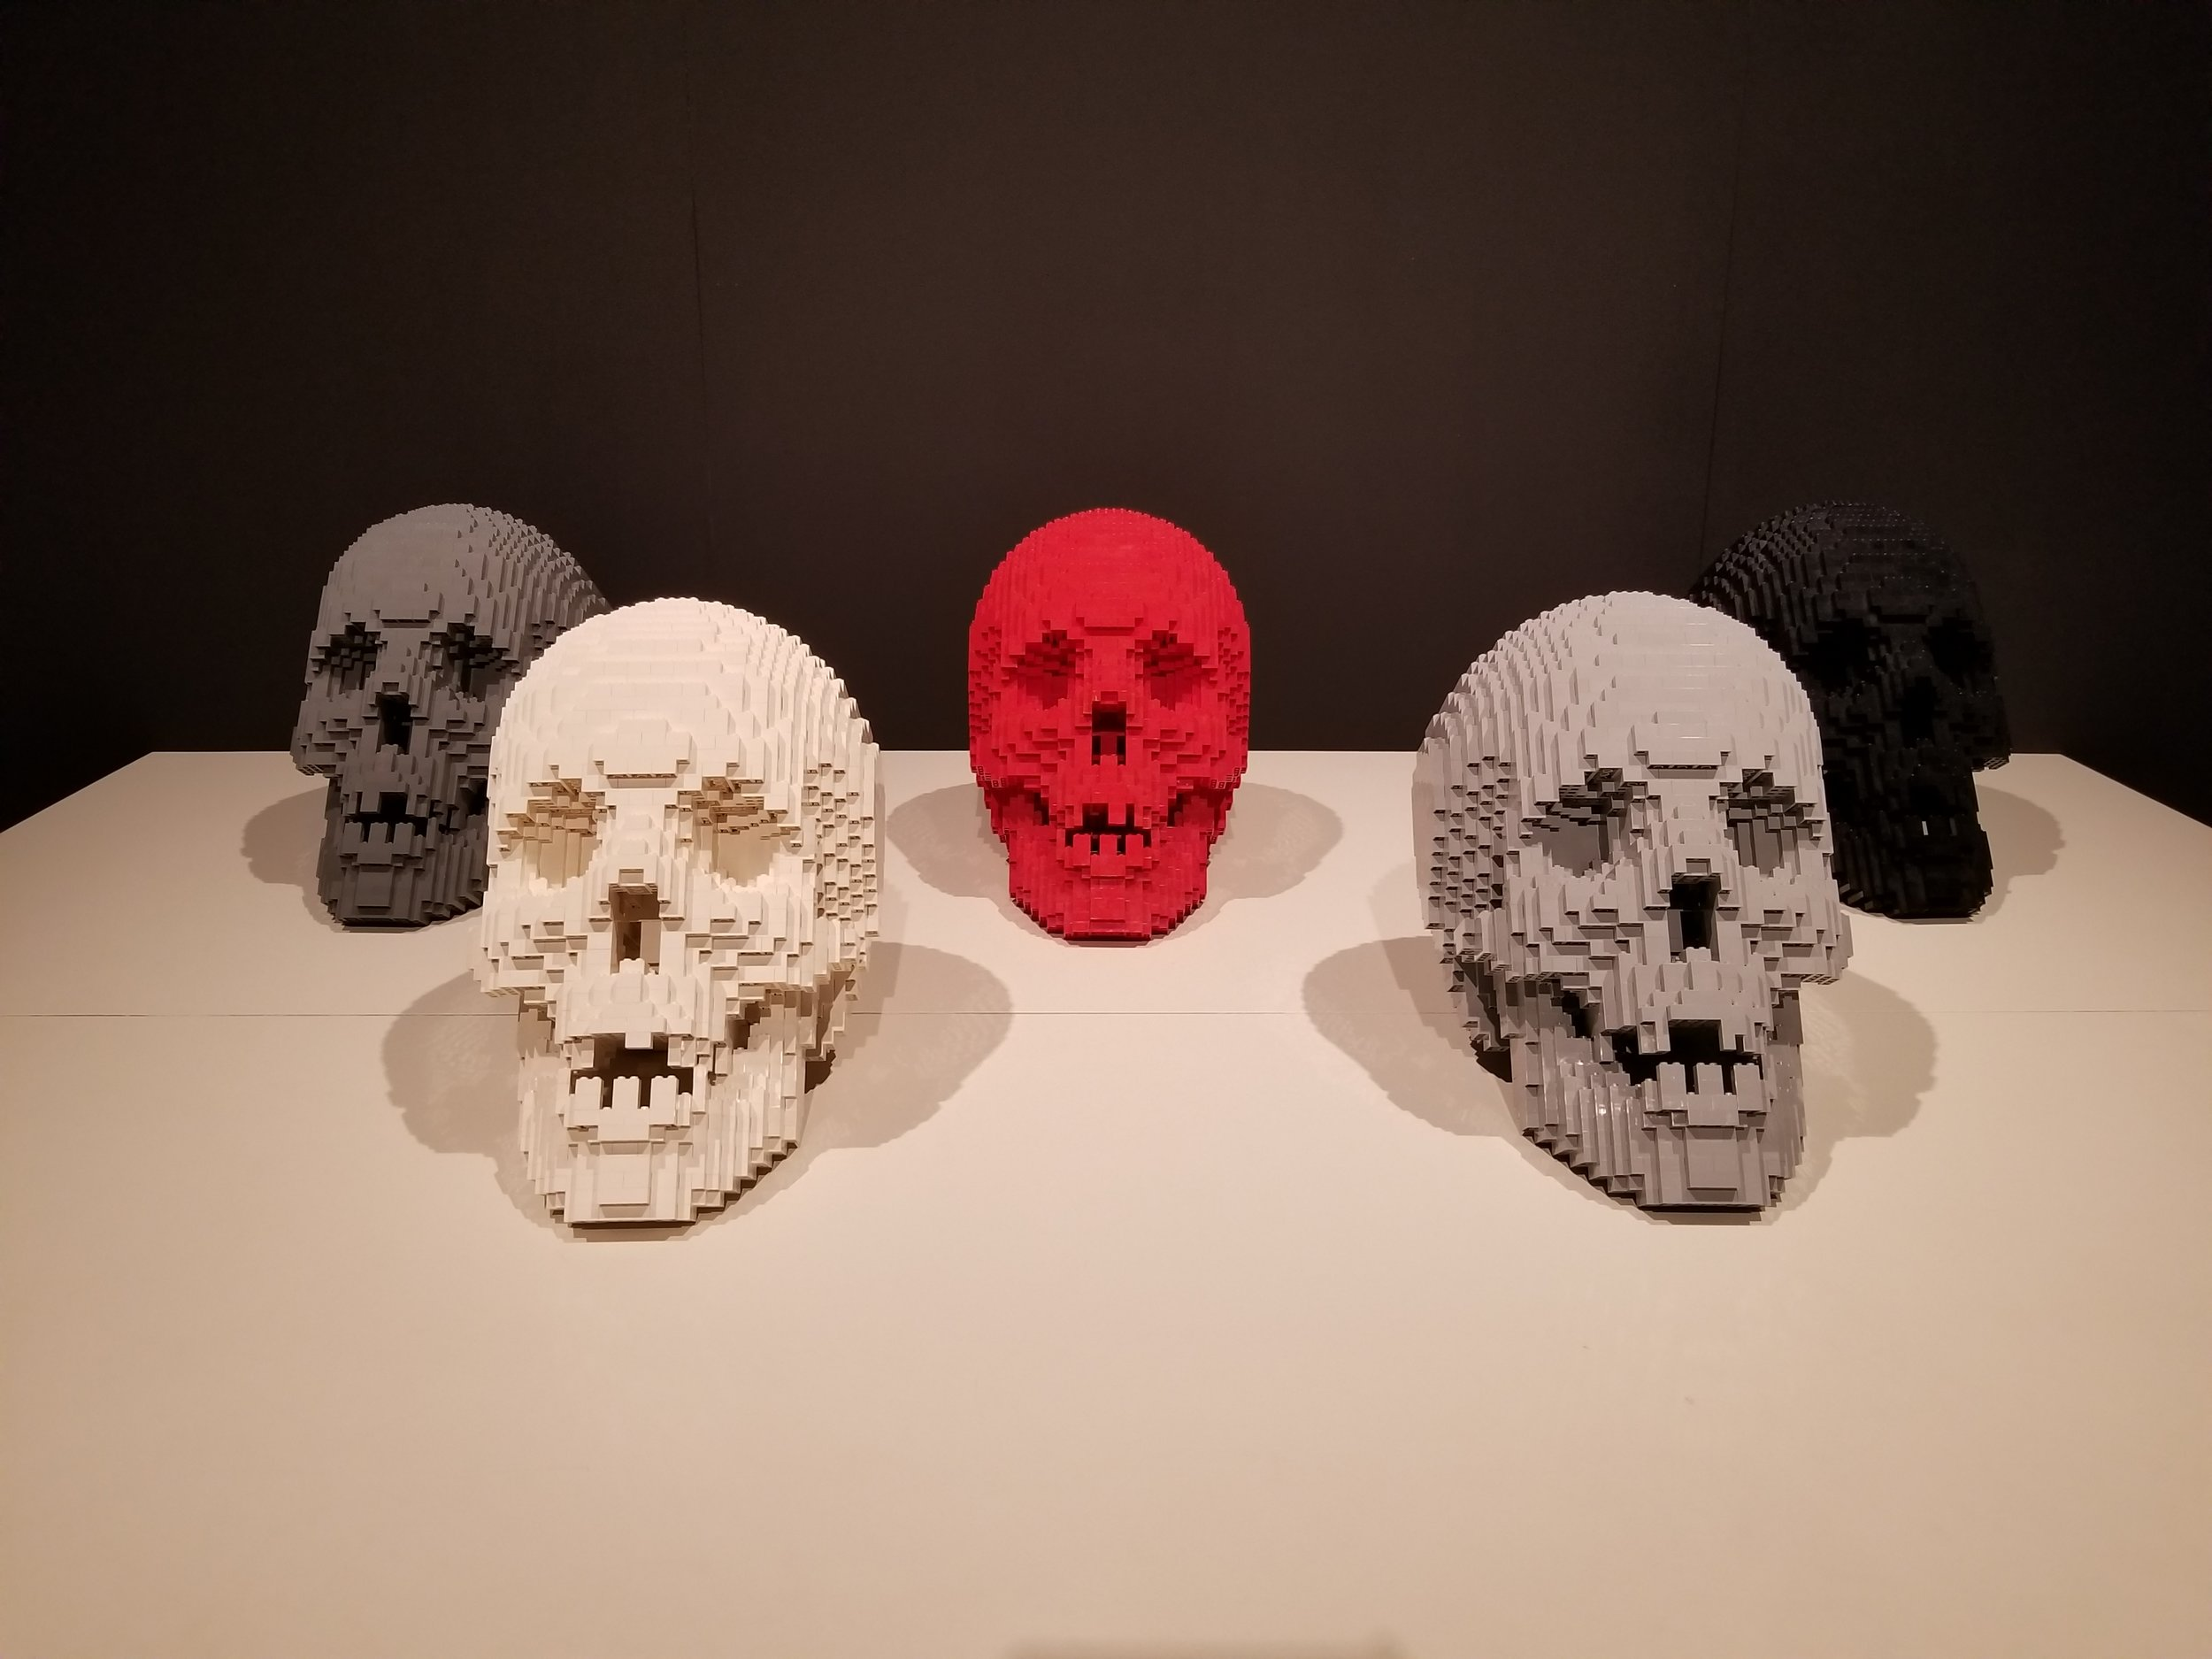 White Skull, Red Skull, Light Gray Skull, Dark Gray Skull, Black Skull